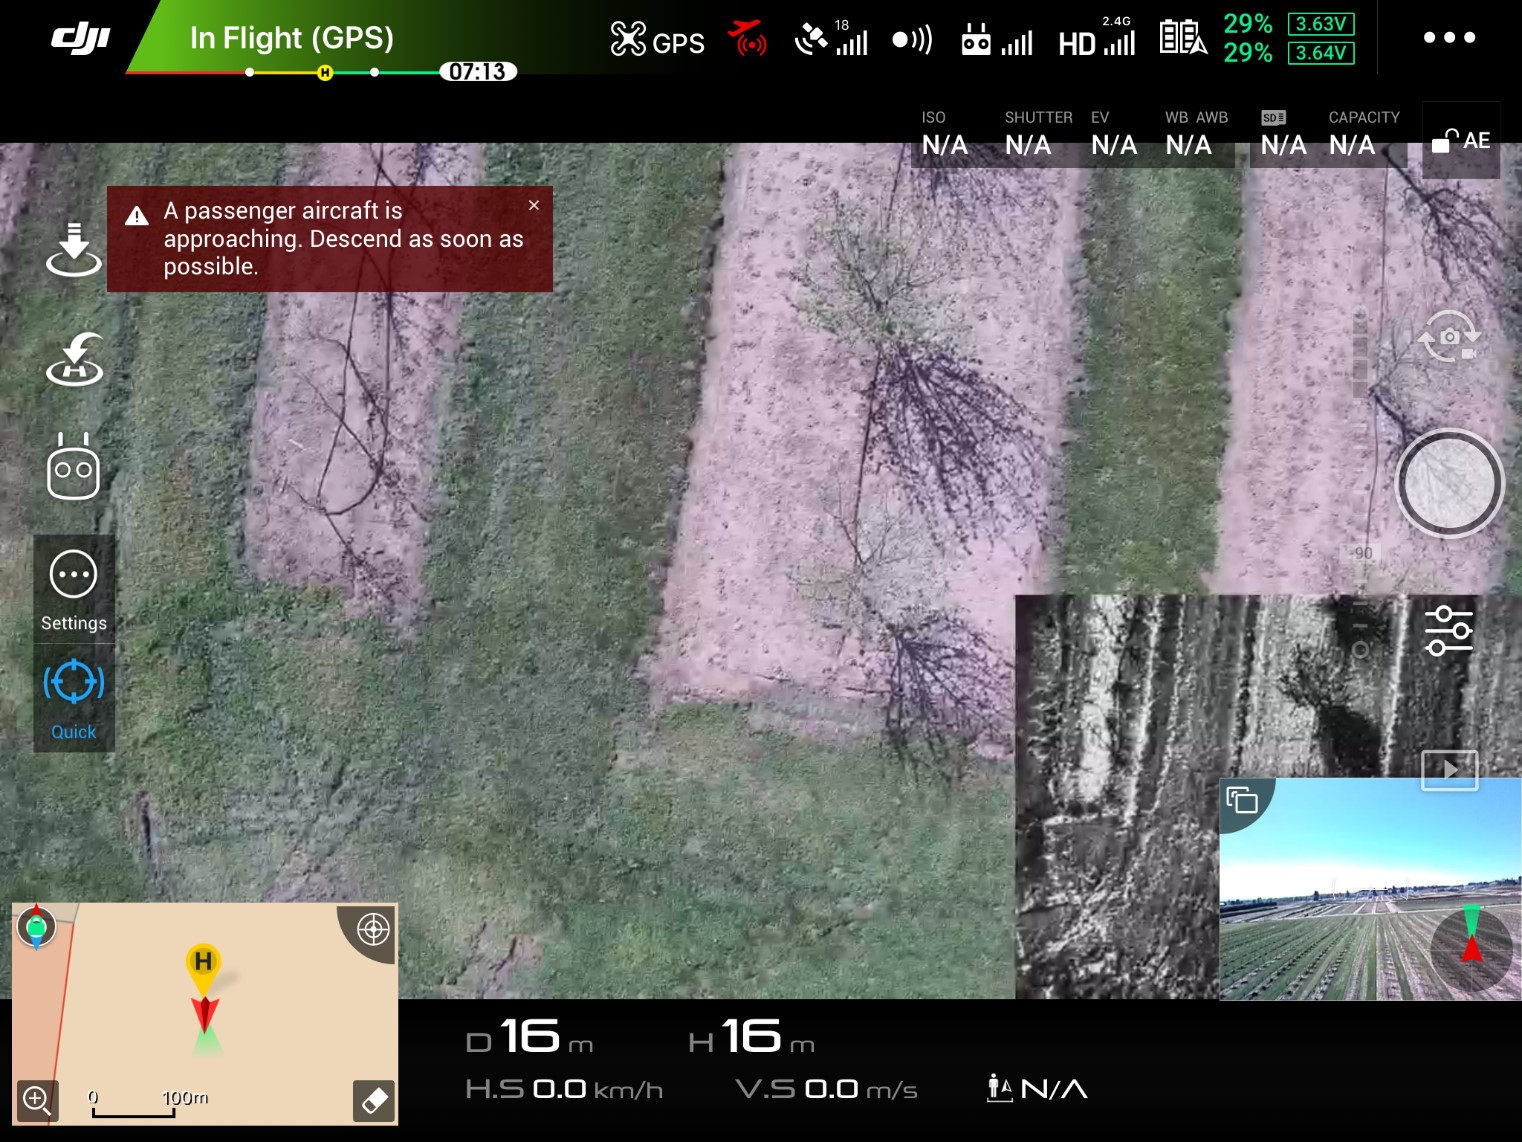 Figure 4. Screenshot of a flight display on a tablet during an unmanned aerial system flight. The display includes many inputs, including the RGB image (large image), the IR image from the same camera (lower right), and the flight path camera (smallest image lower right). Other information displayed includes battery remaining (upper right), GPS status (upper middle), flight path confliction (upper-middle and upper left warnings, controlled airspace shown lower left).